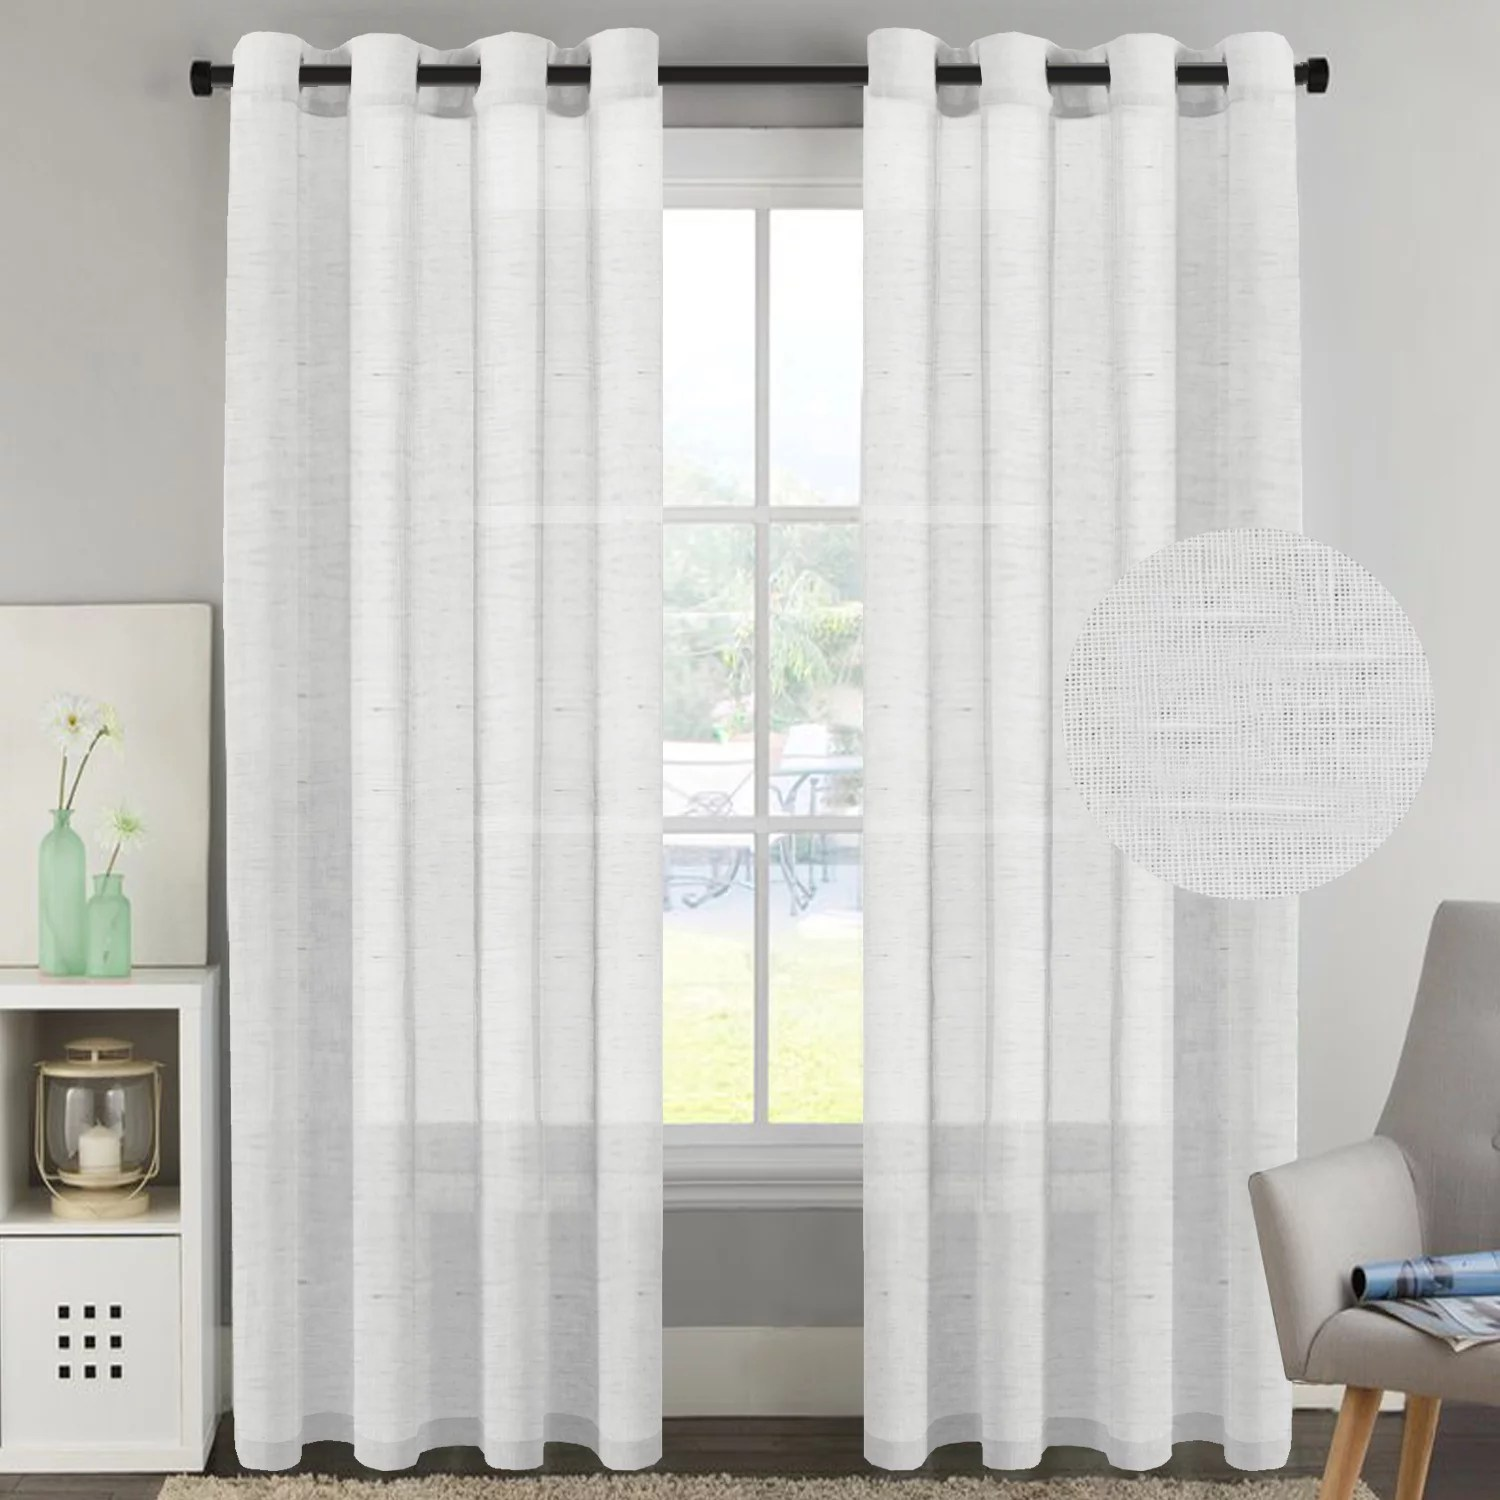 h versailtex white curtain panels rich natural linen sheer curtains for bedroom 2 panels elegant nickel grommet top 52x96 inch